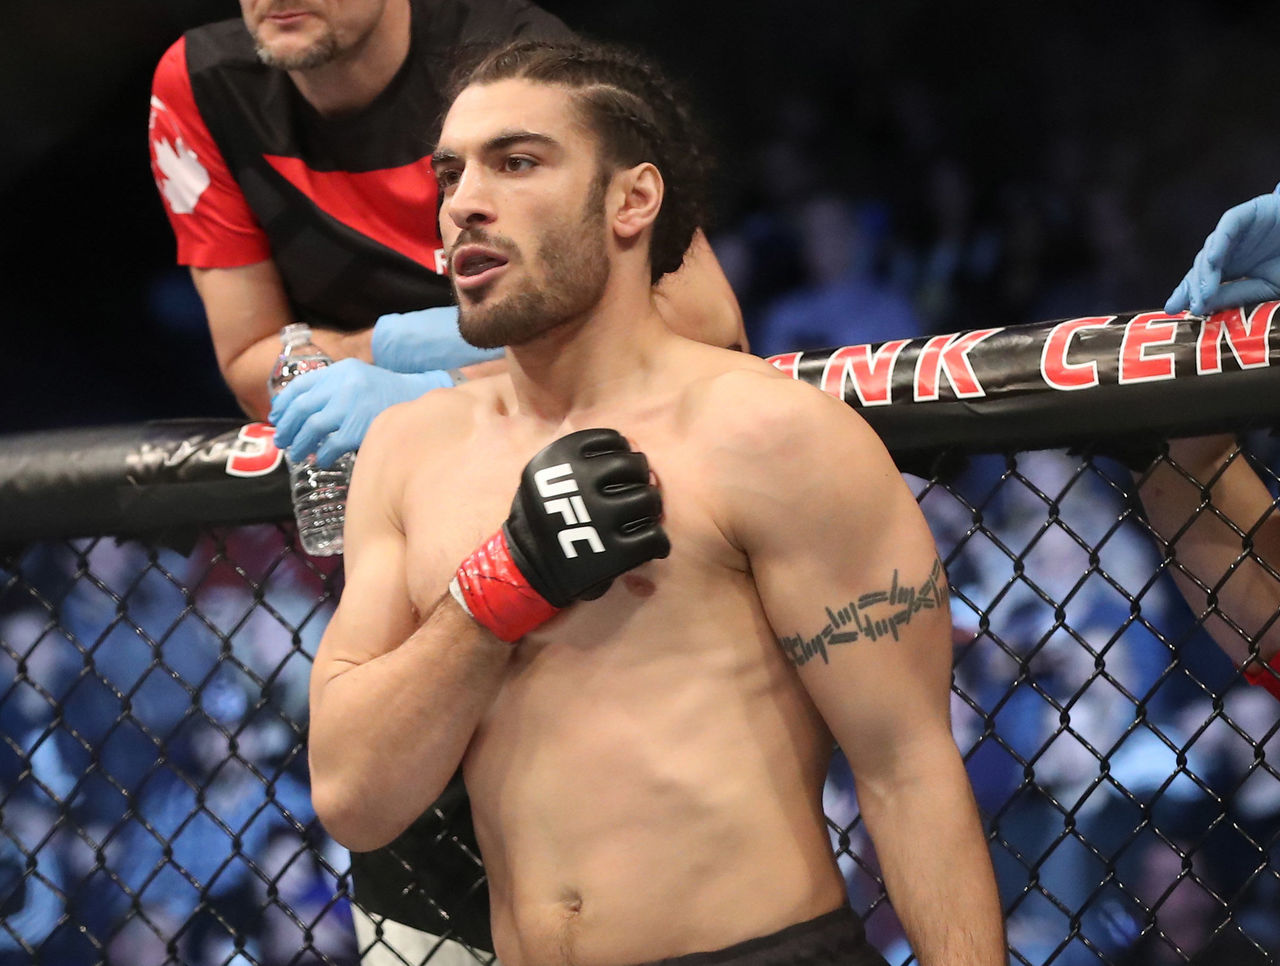 Cropped 2017 02 20t033139z 544798685 nocid rtrmadp 3 mma ufc fight night theodorou vs ferreira